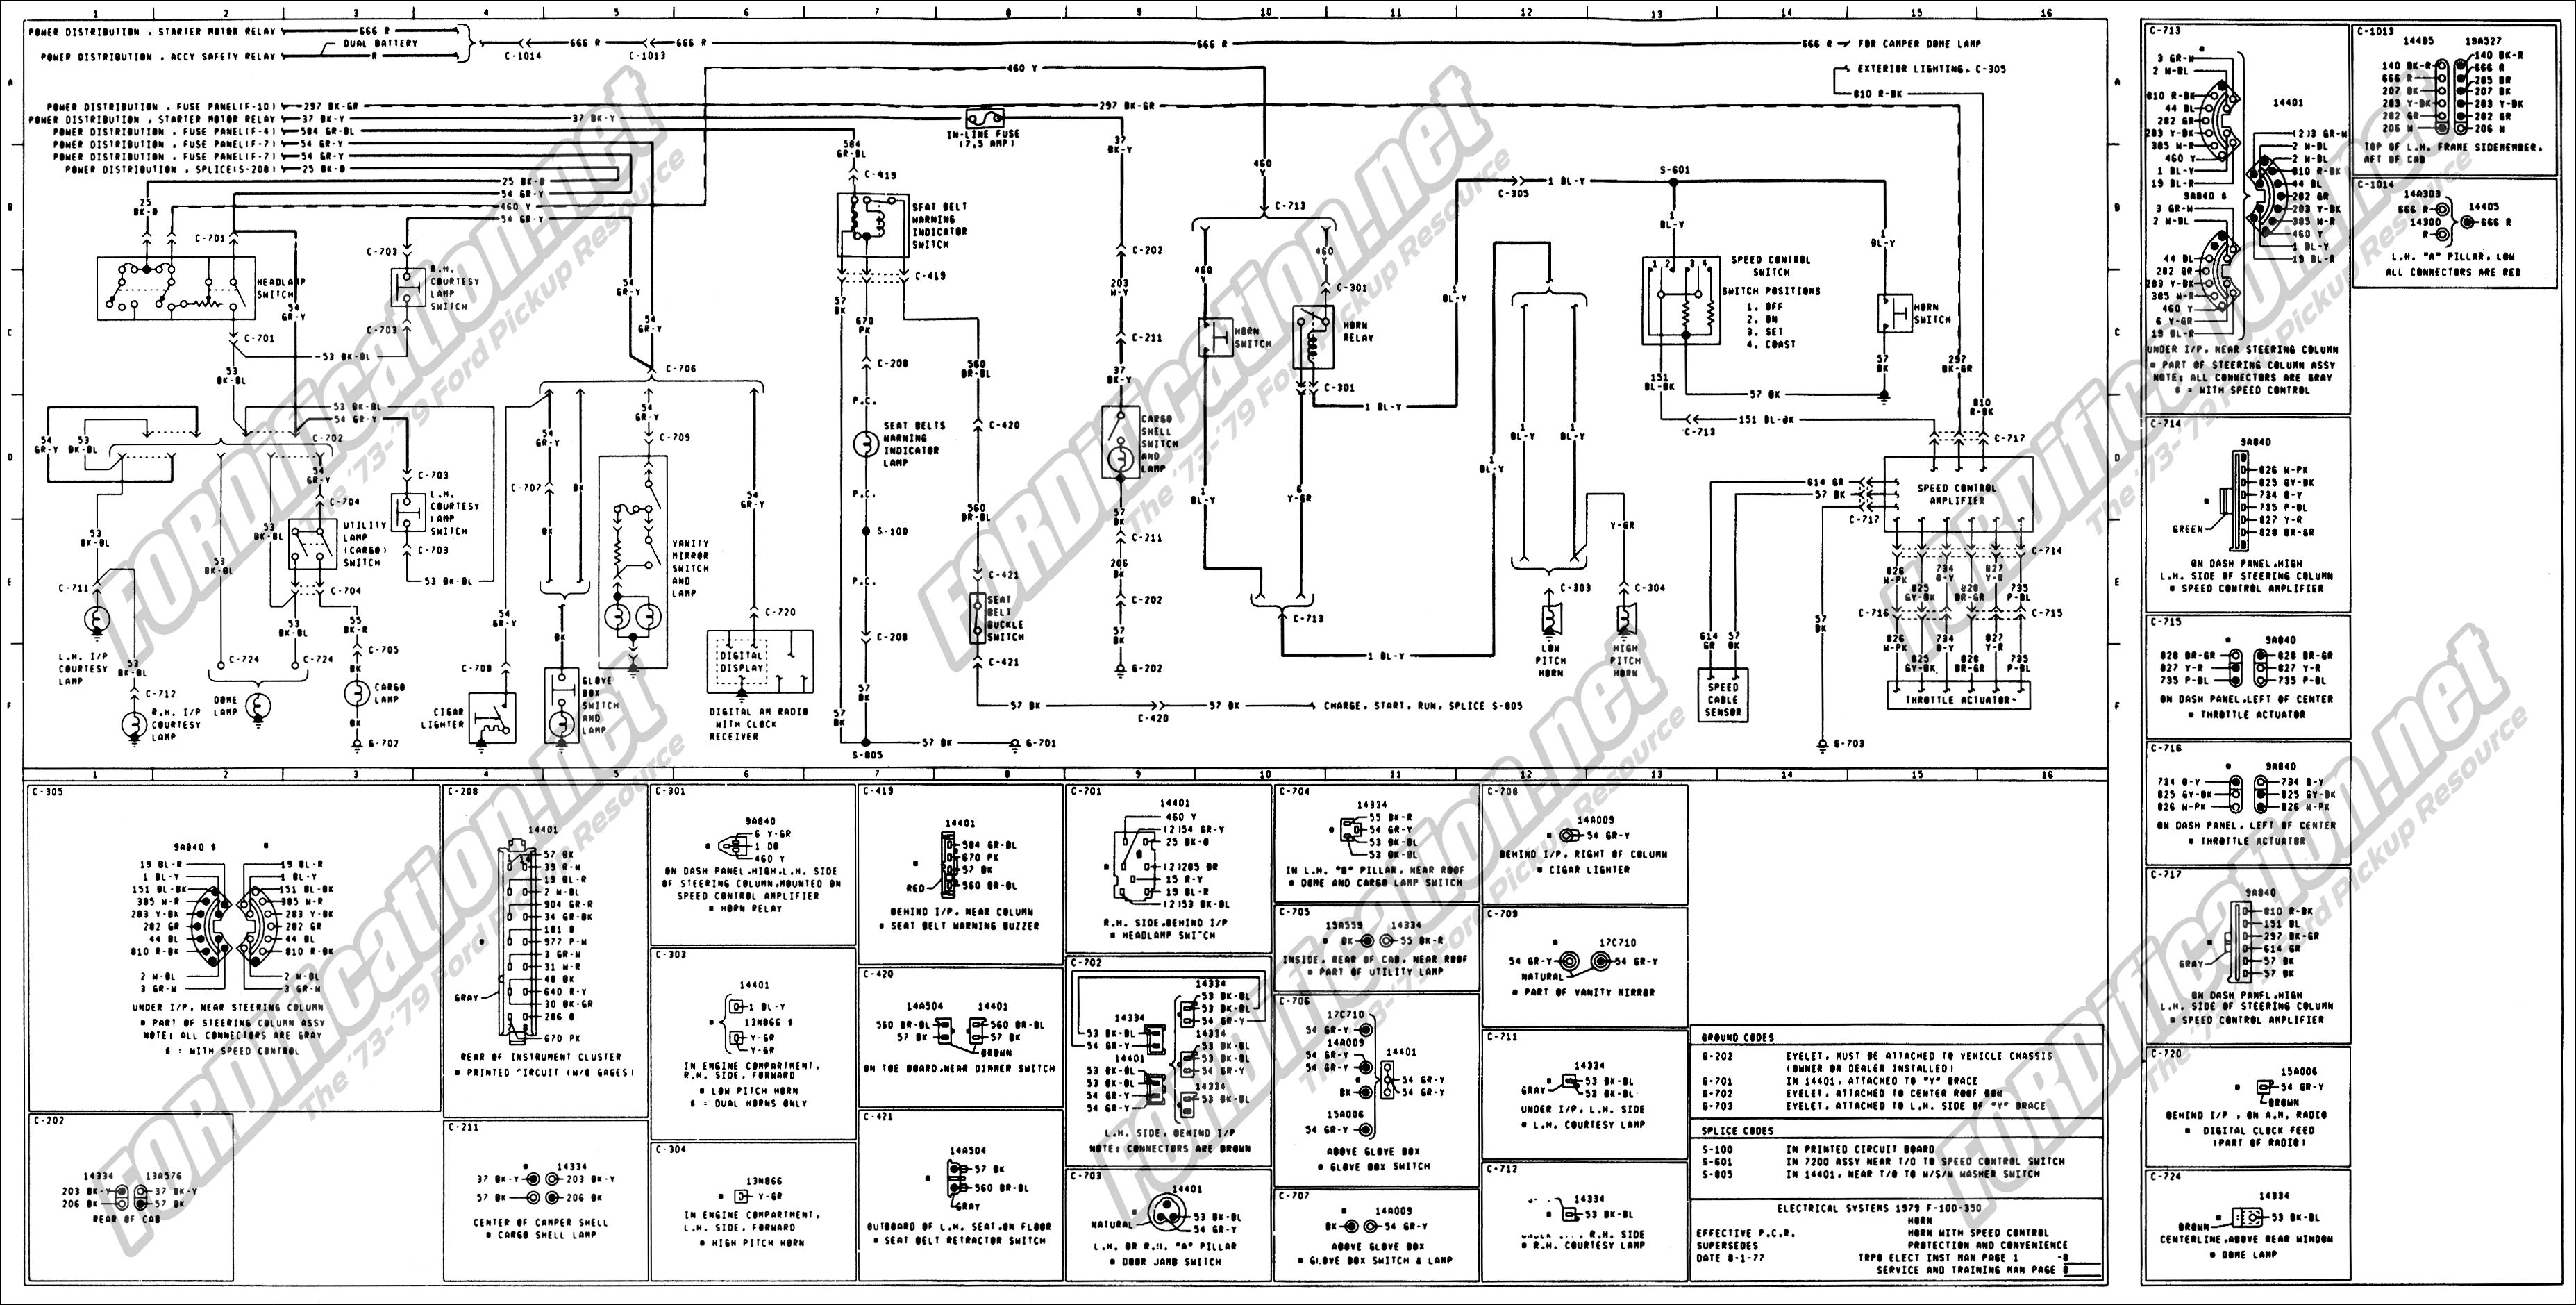 wiring_79master_8of9 1973 1979 ford truck wiring diagrams & schematics fordification net 1978 bronco fuse box diagram at bakdesigns.co